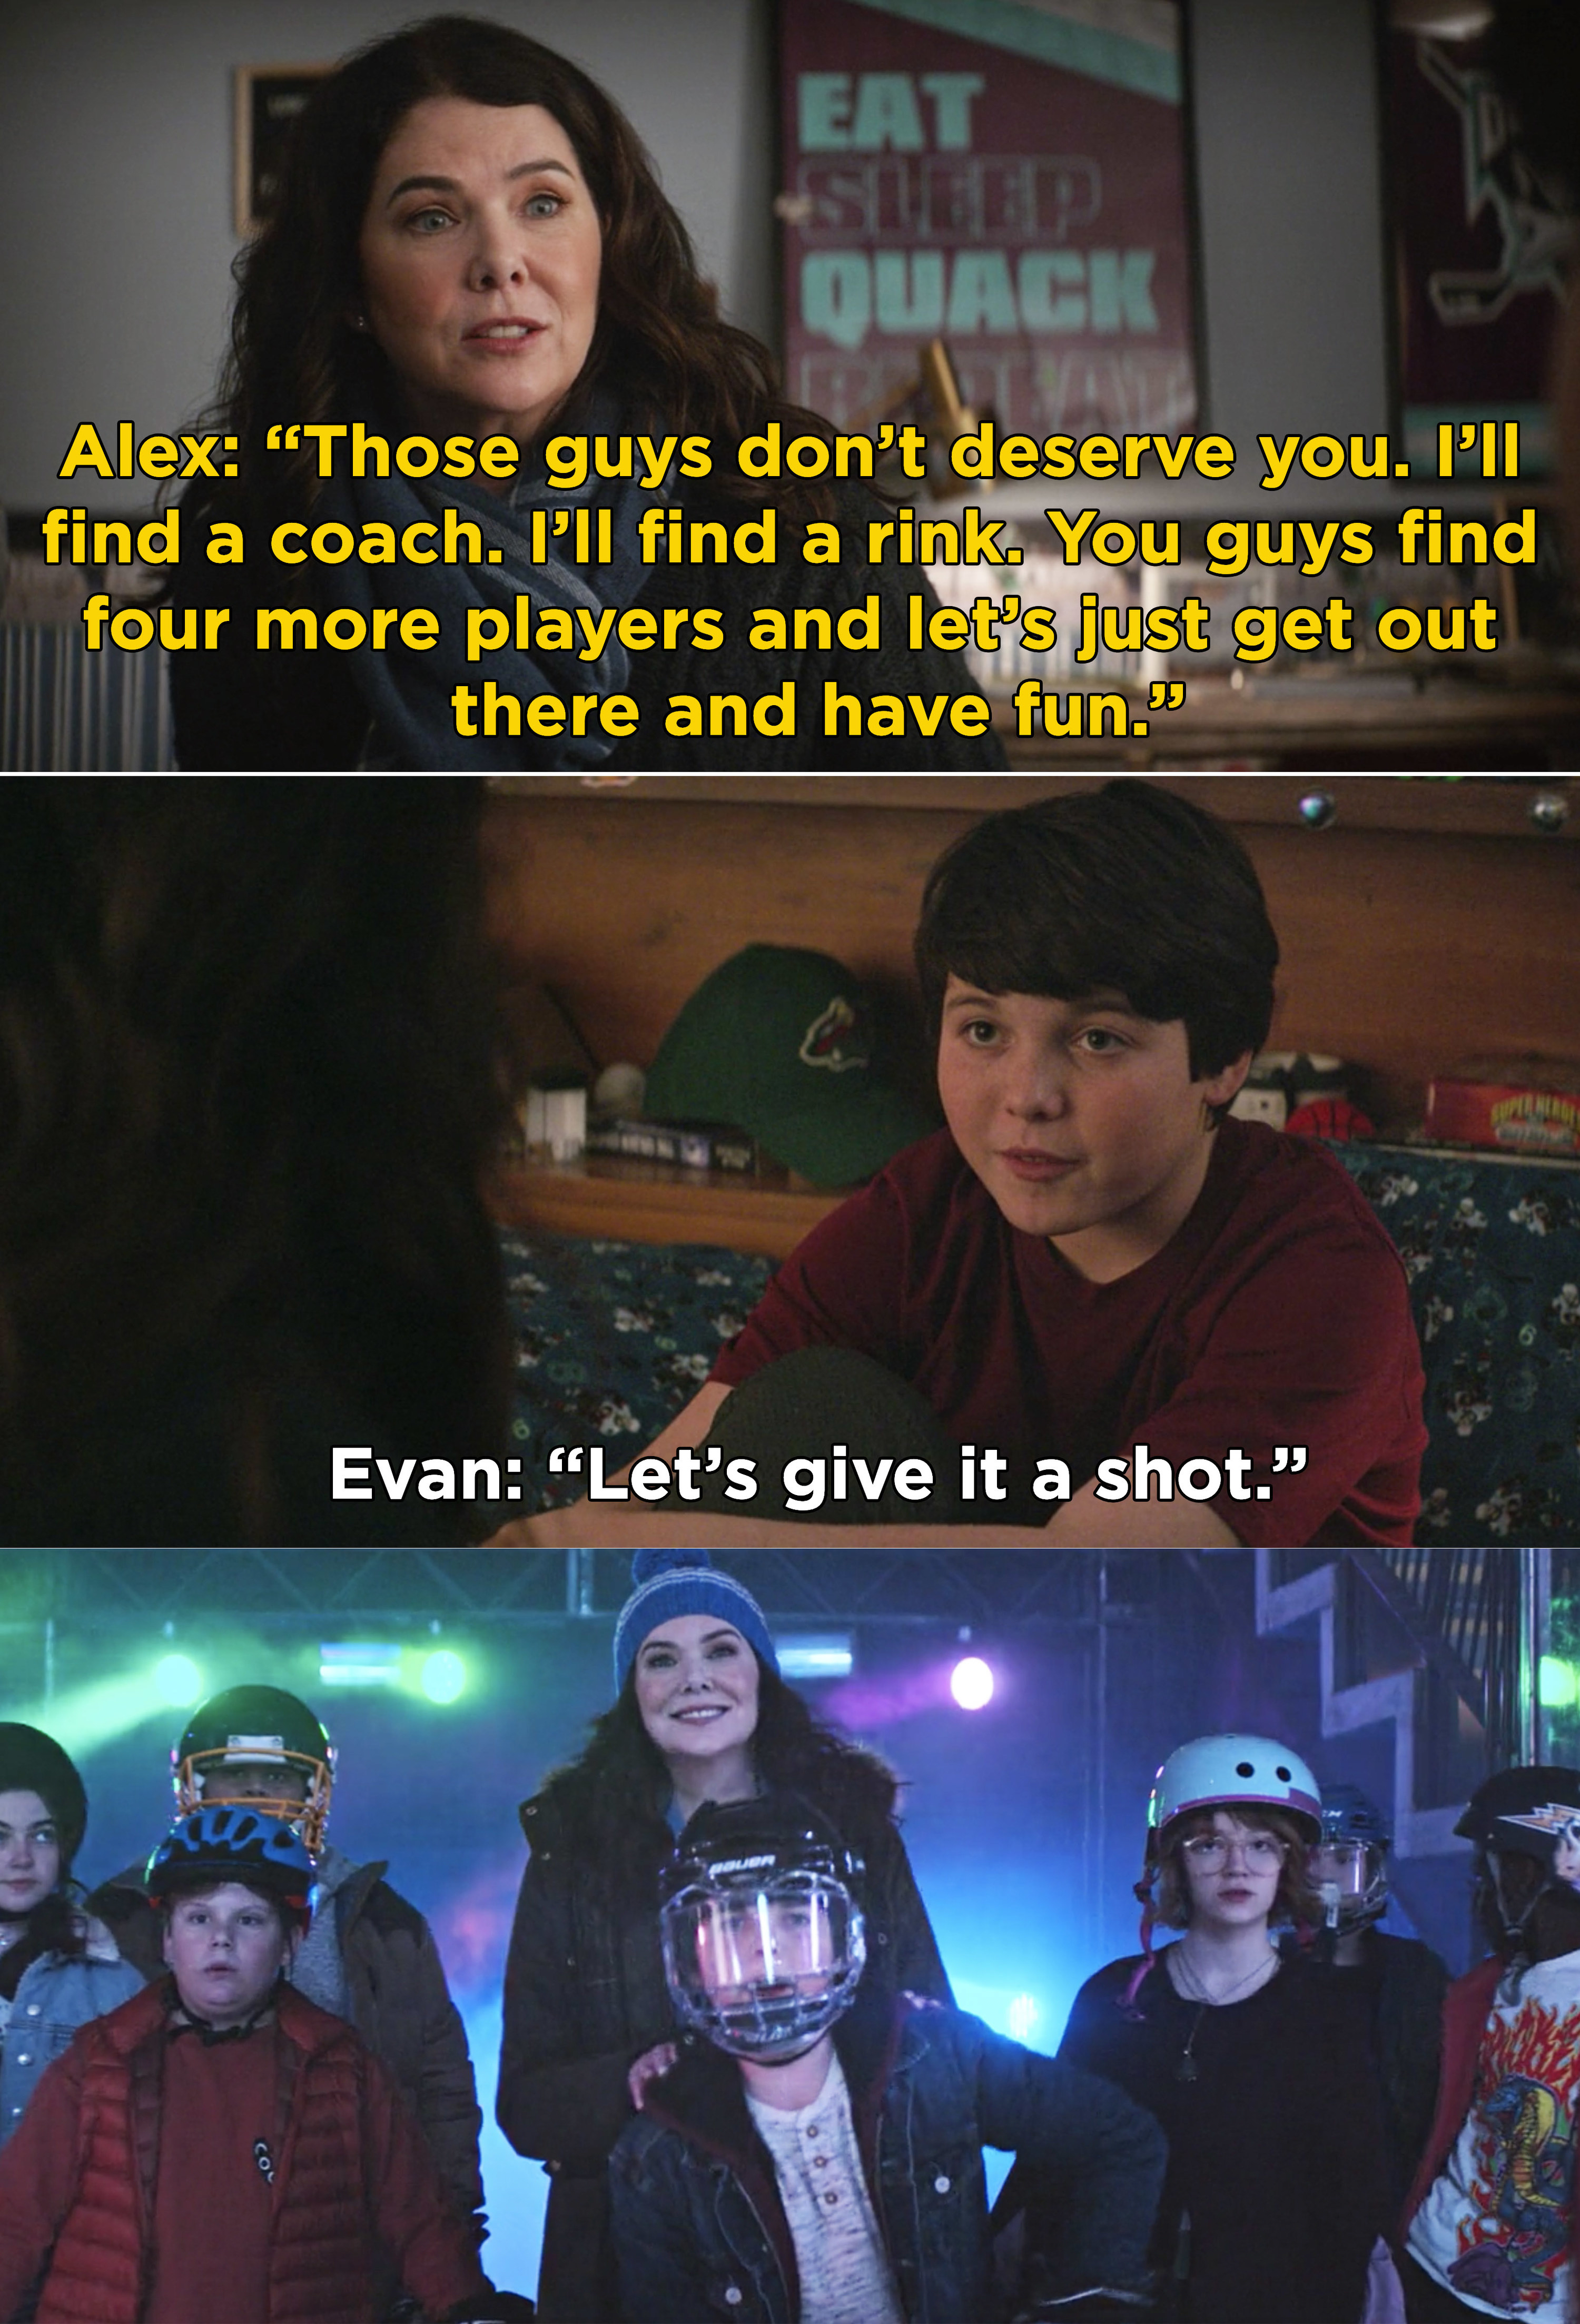 """Alex telling Evan to find some players for a team and """"let's just get out there and have fun"""""""